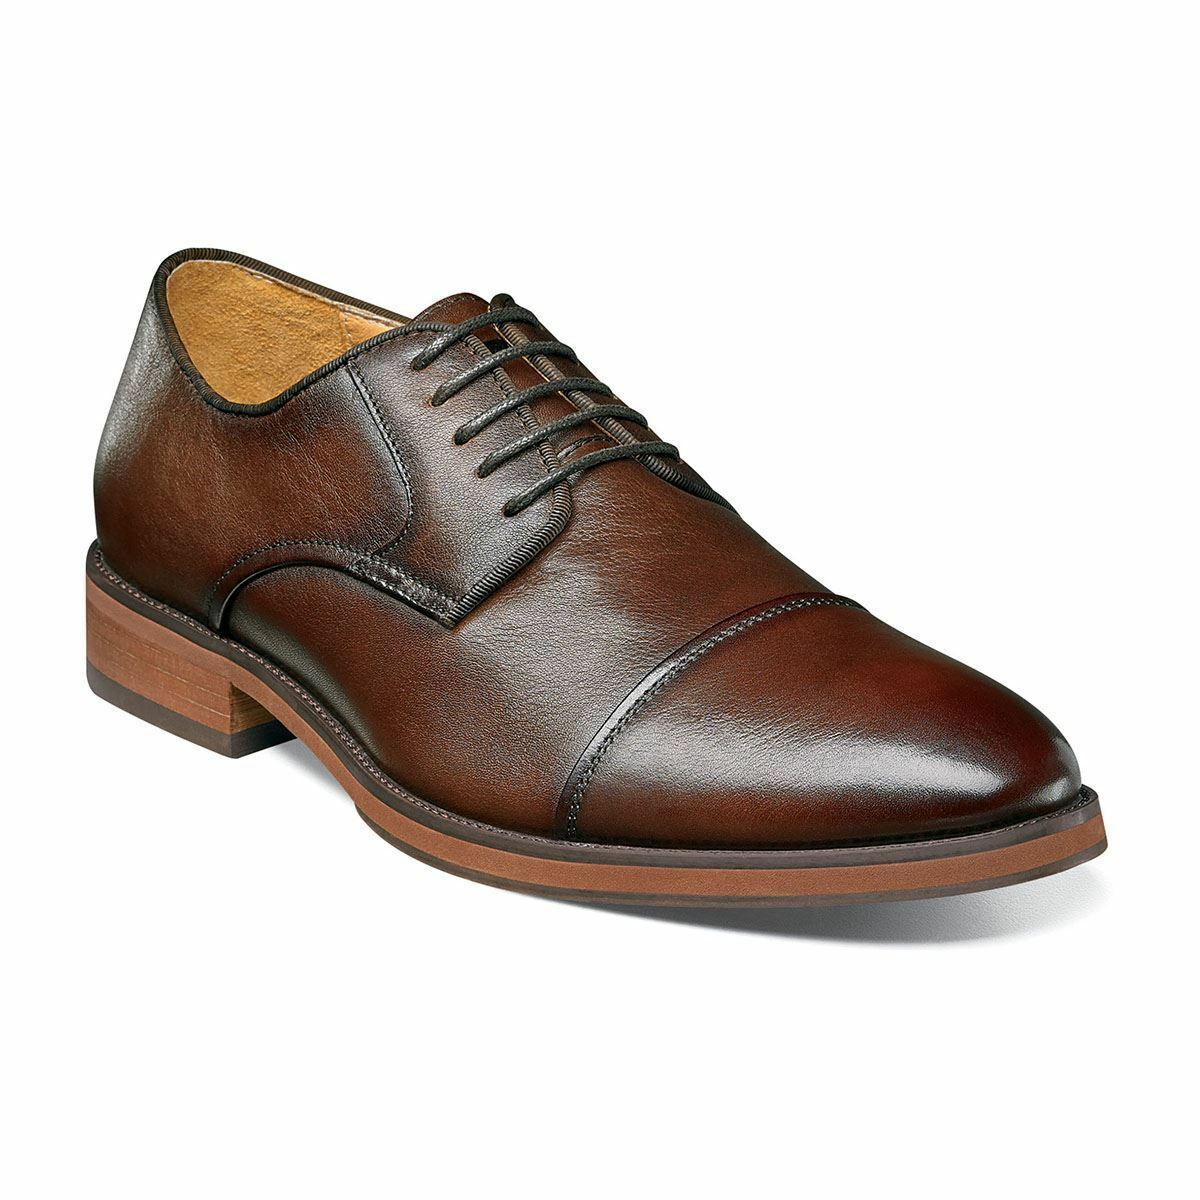 Florsheim Blaze Cap Toe Oxford Mens shoes Brown Leather Cushioned 14199-200